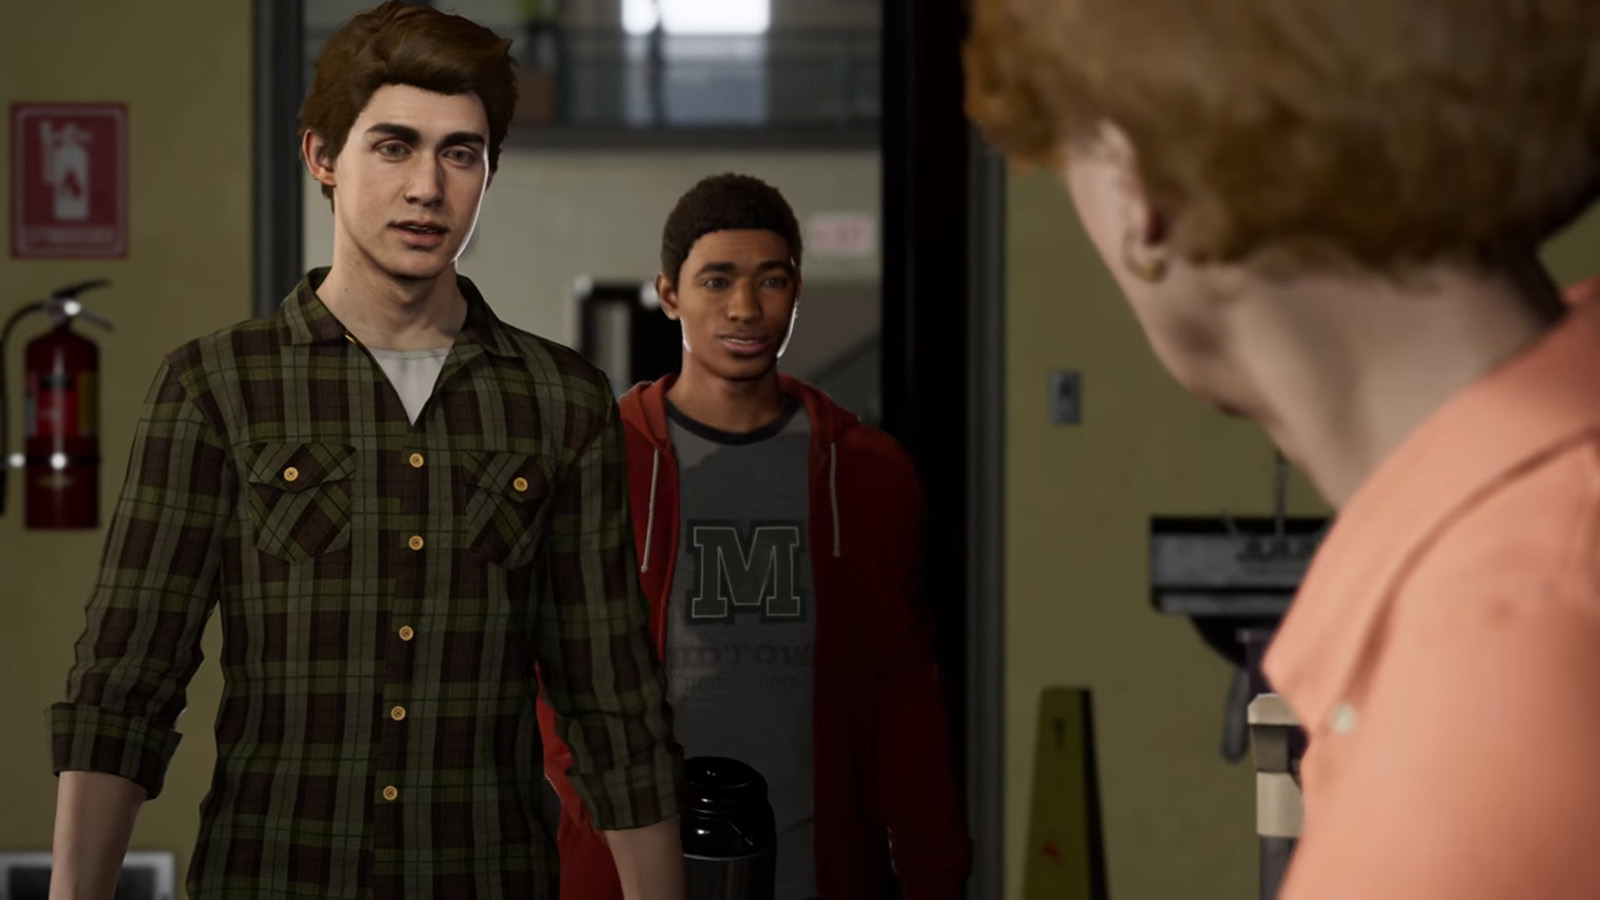 Miles Morales adds intrigue to 'Spider-Man' on PS4